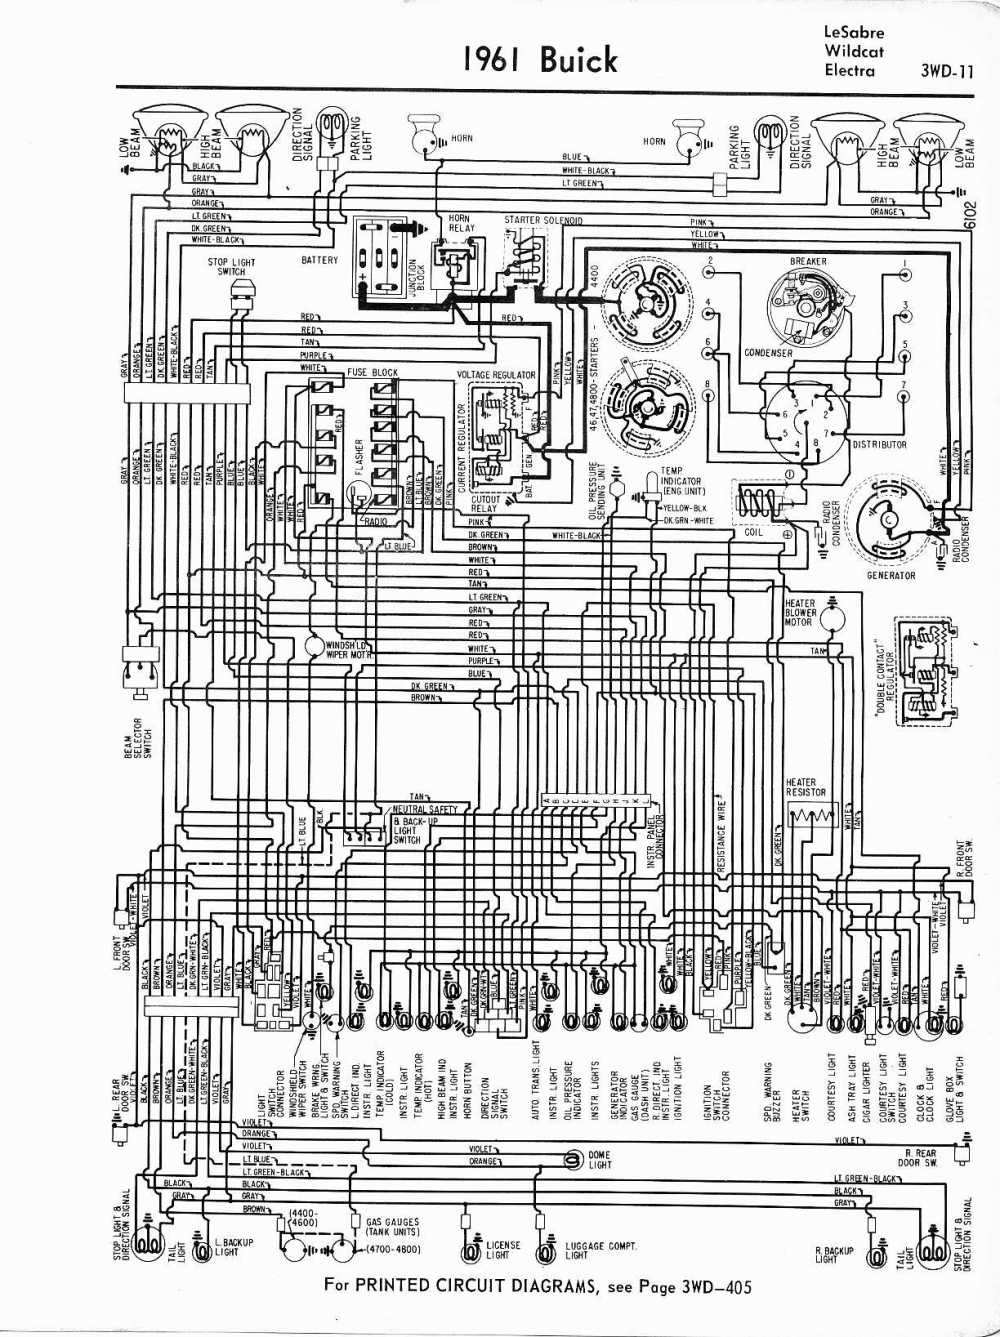 medium resolution of buick 455 wiring diagram simple wiring schema 1972 gs 1972 buick 455 wiring diagram simple wiring